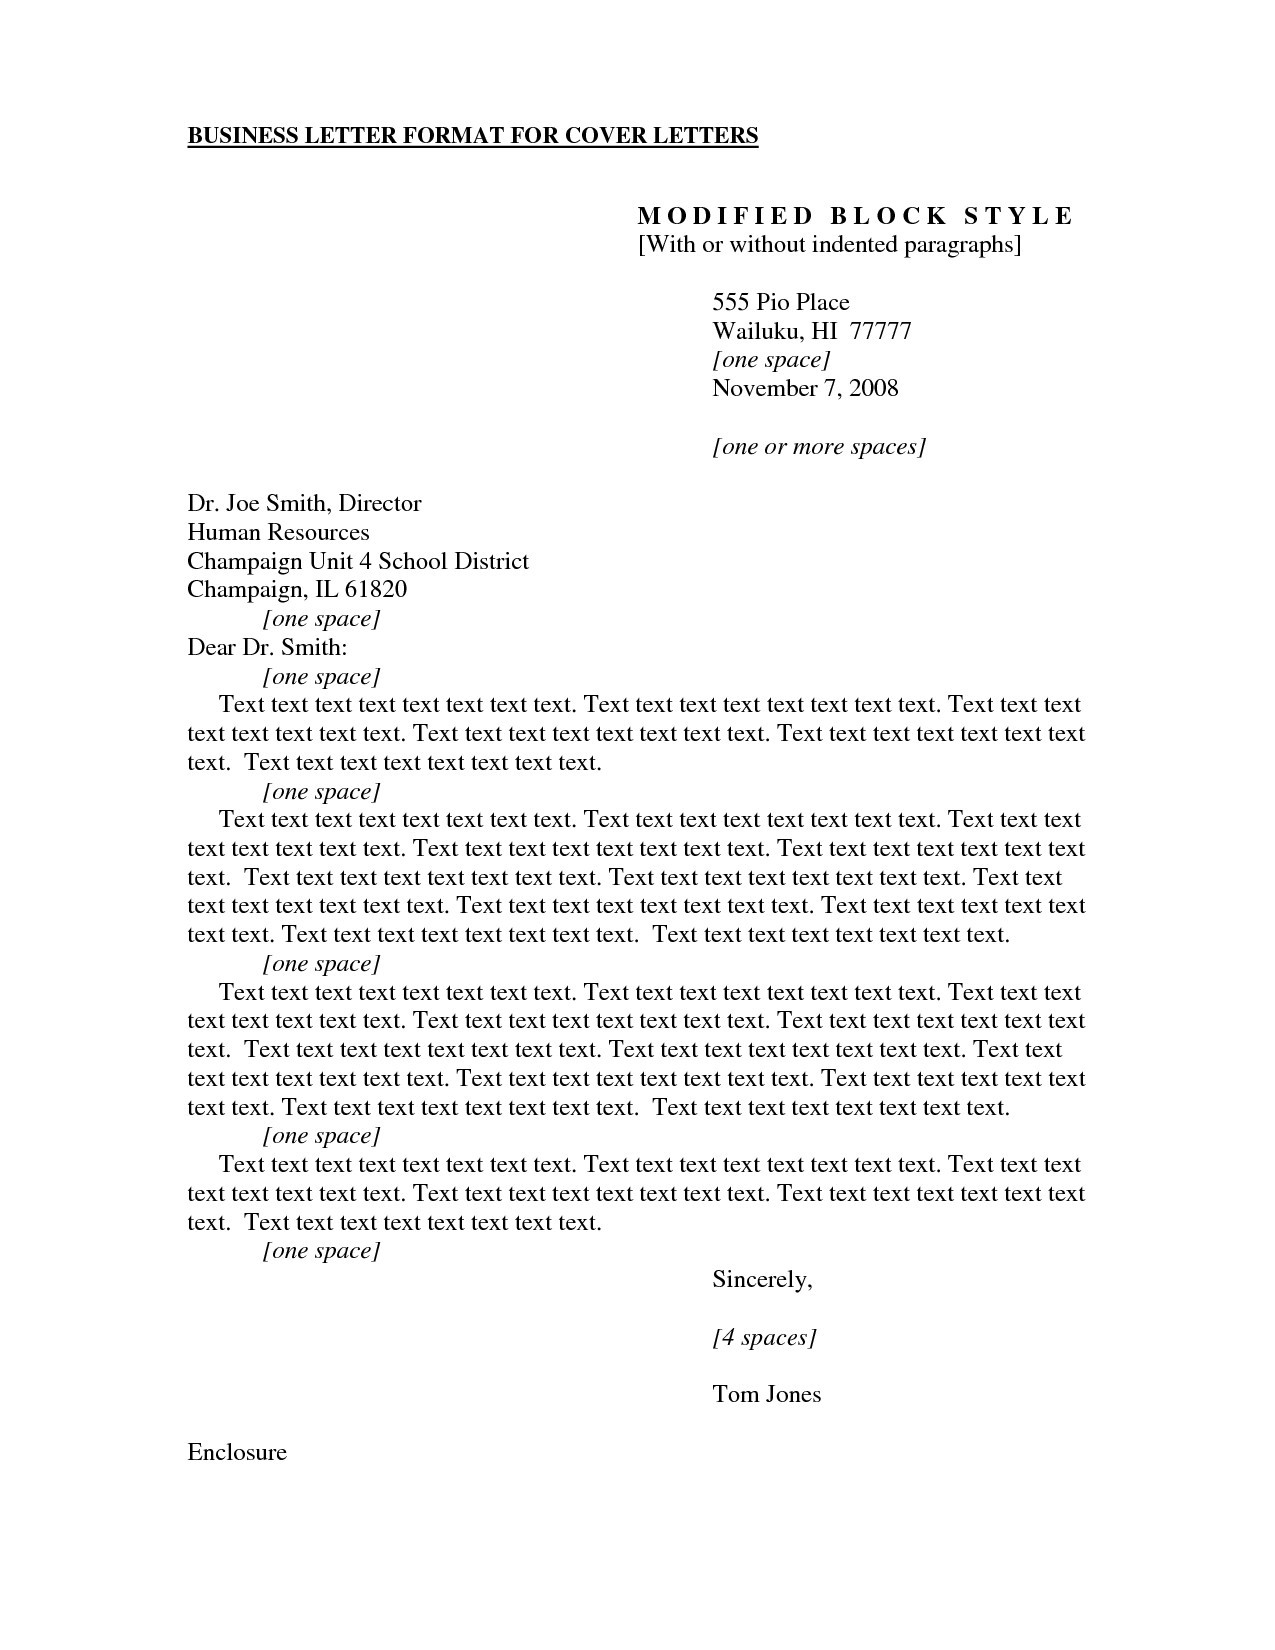 award winning cover letters - formal business cover letter format examples and forms